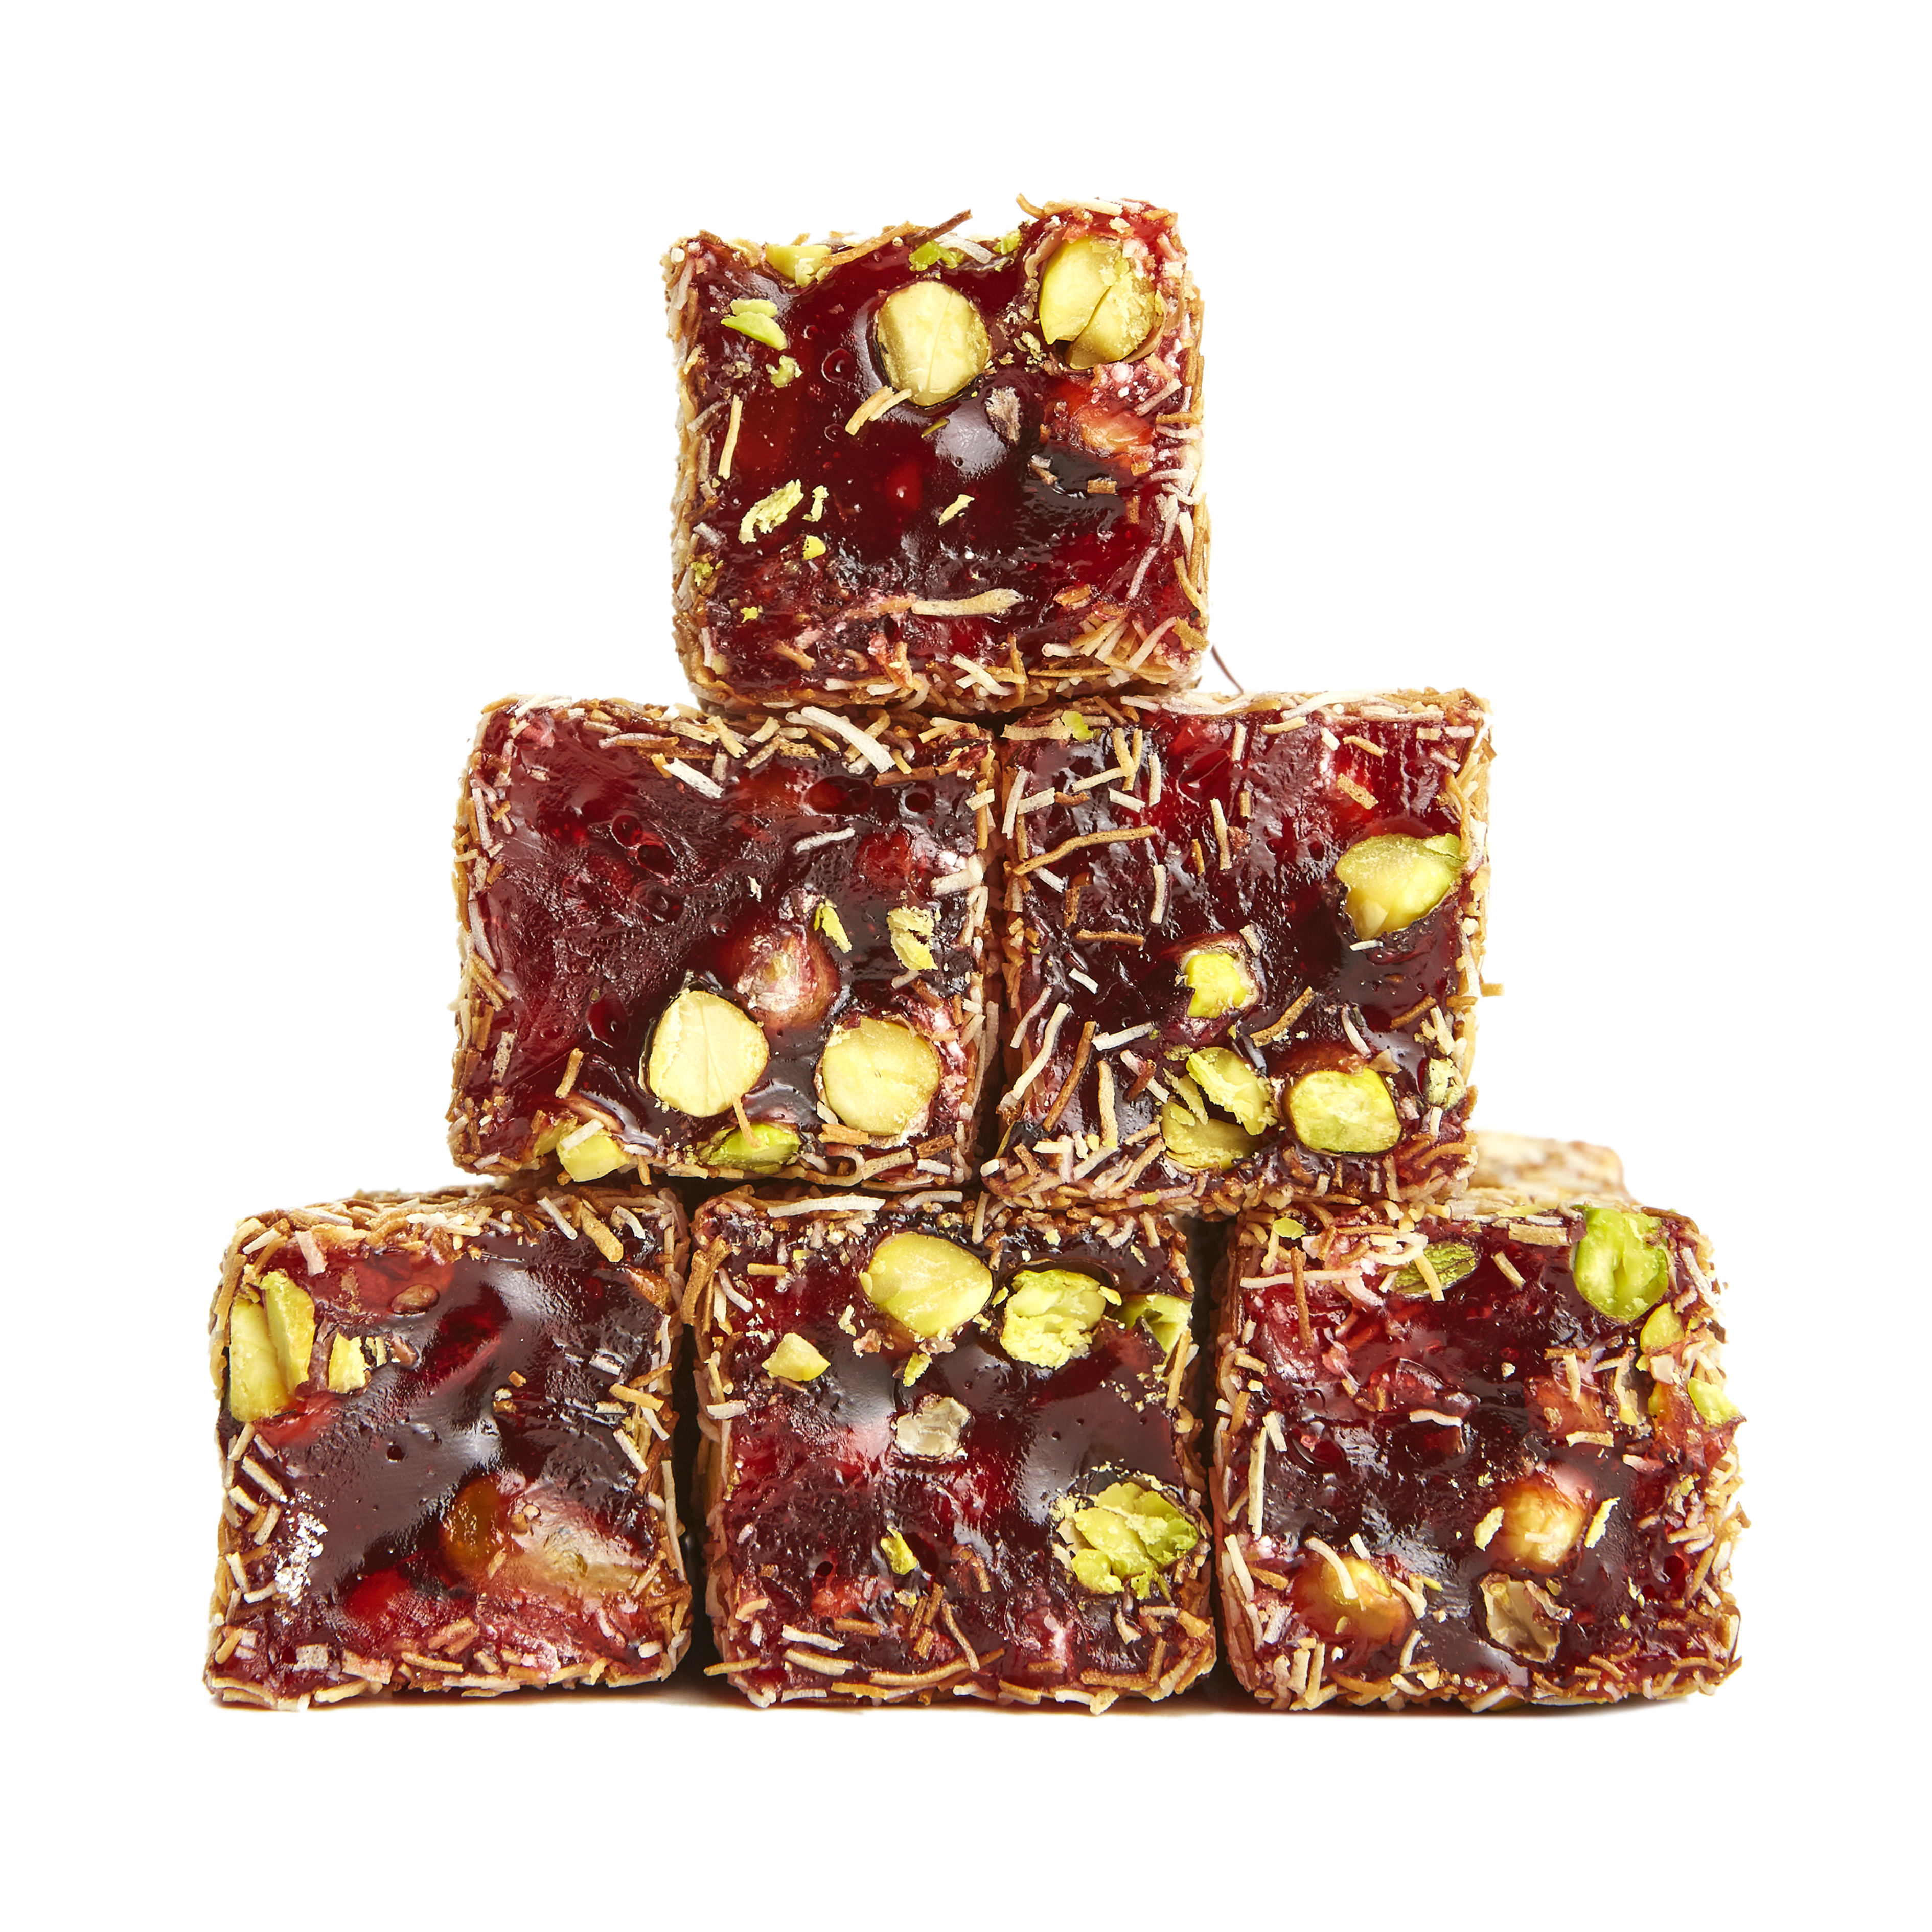 Shredded Wheat, Pomegranate and Pistachios Turkish Delight